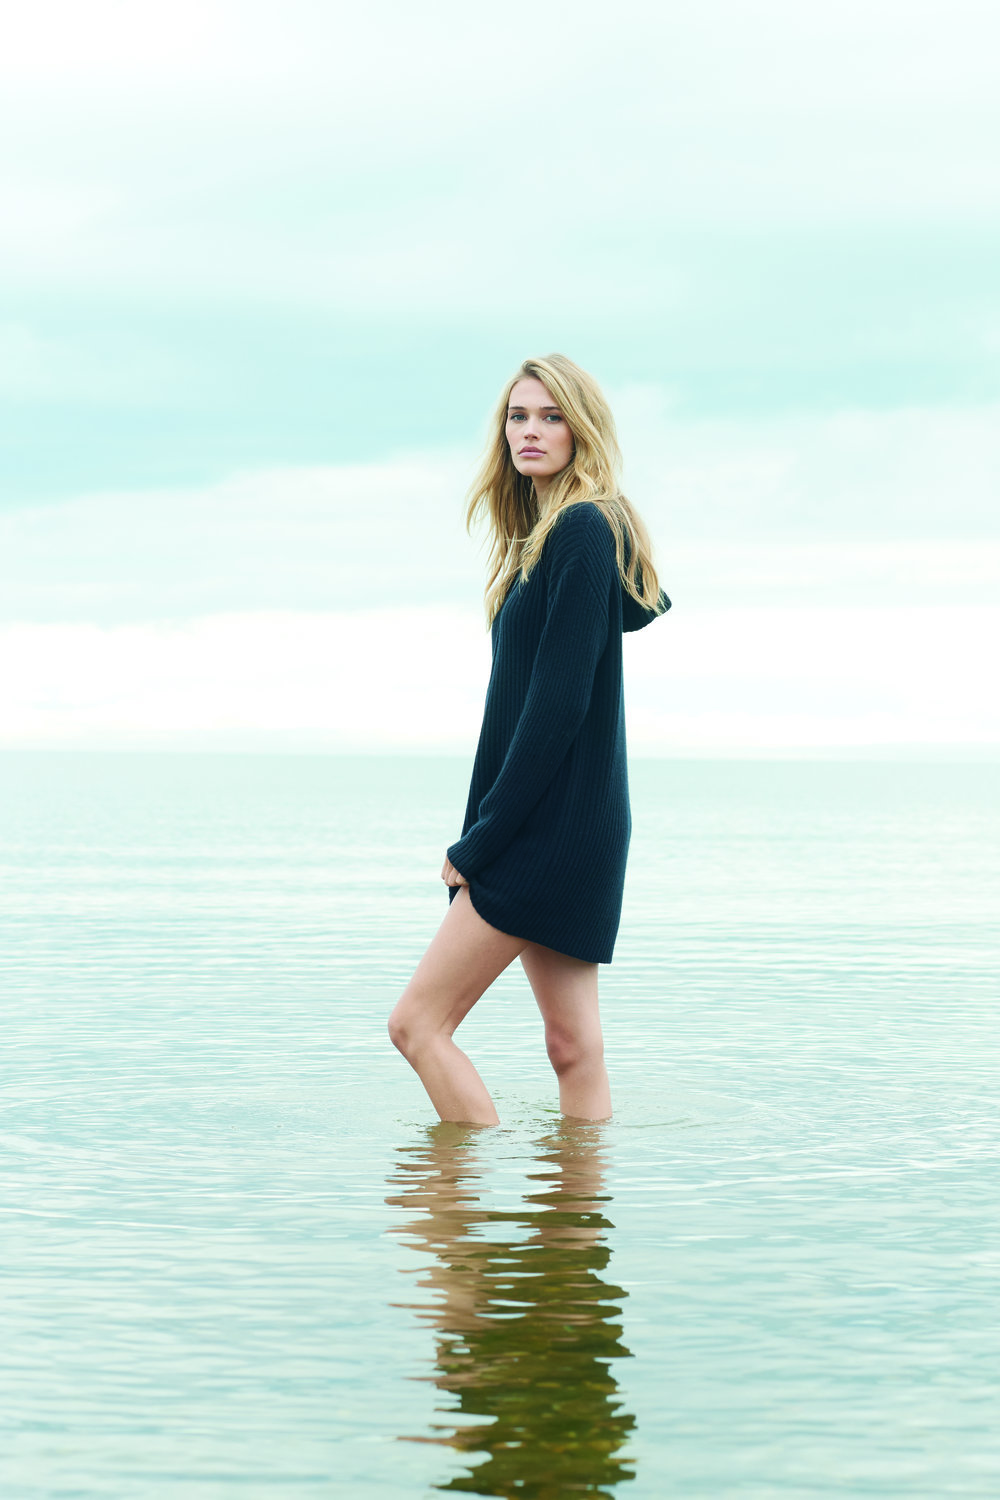 Ilia Dress, 100% Cashmere, $275